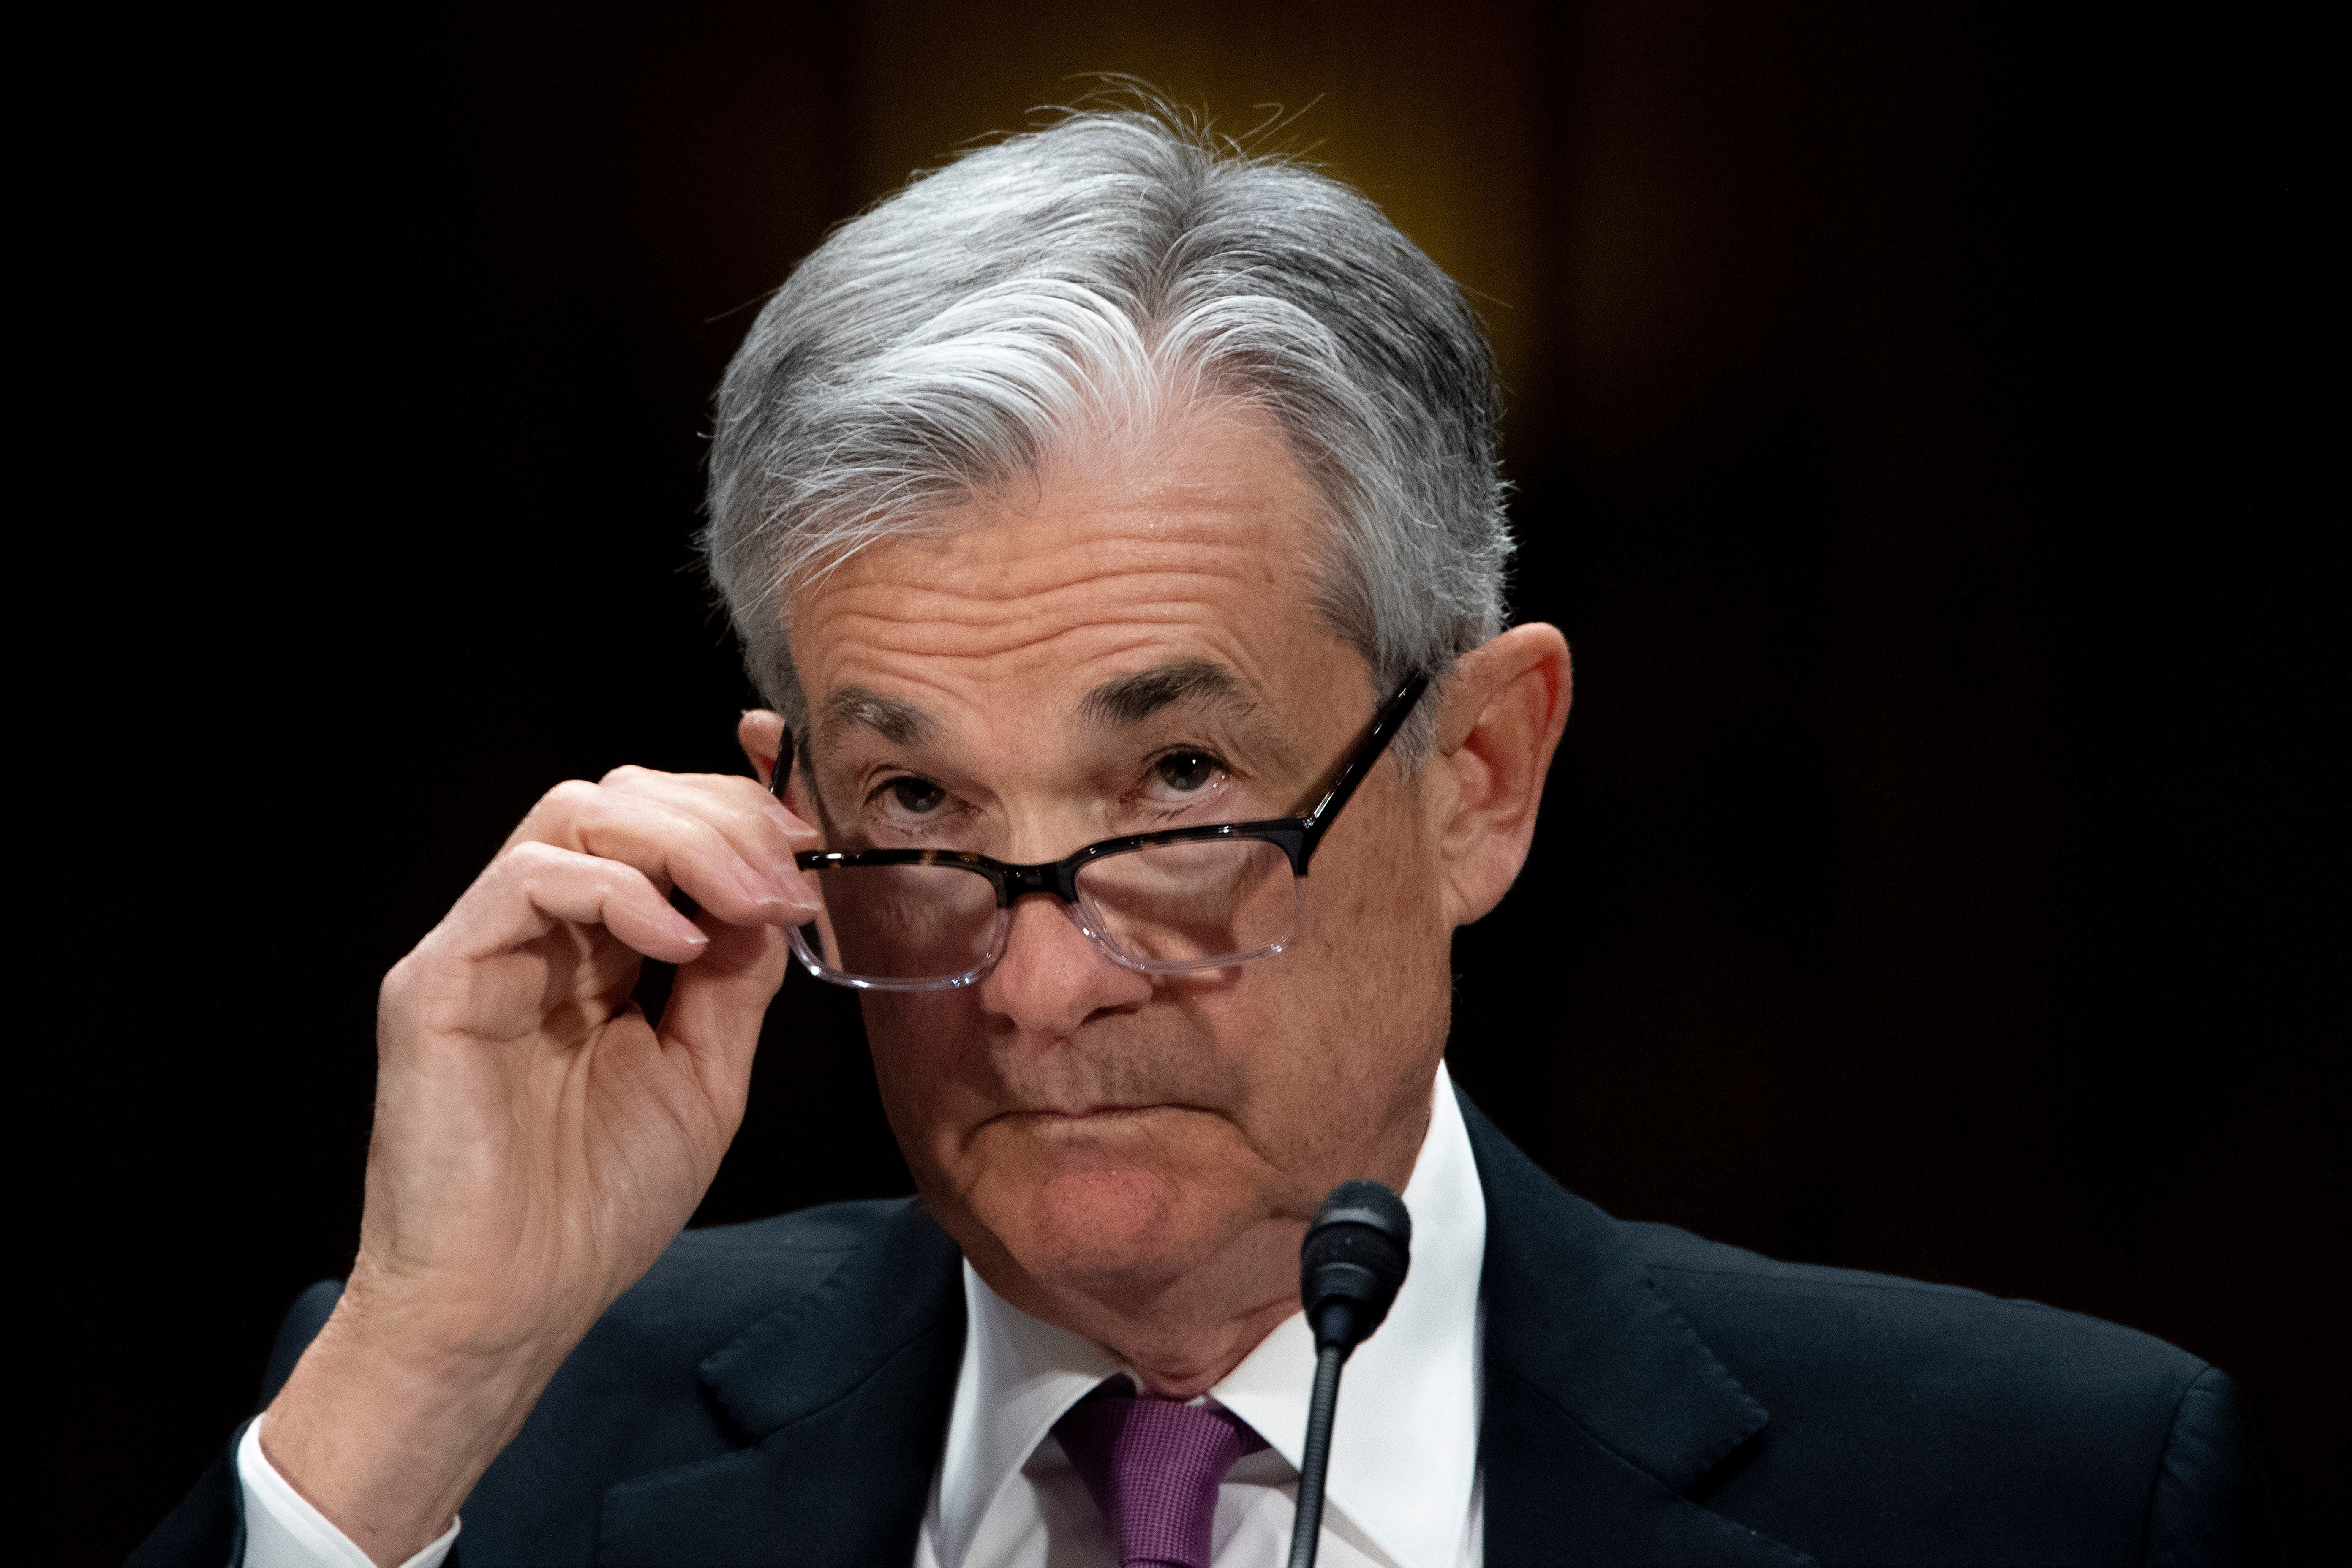 Even if the Fed cuts rates this summer, it could be too late to stop a recession